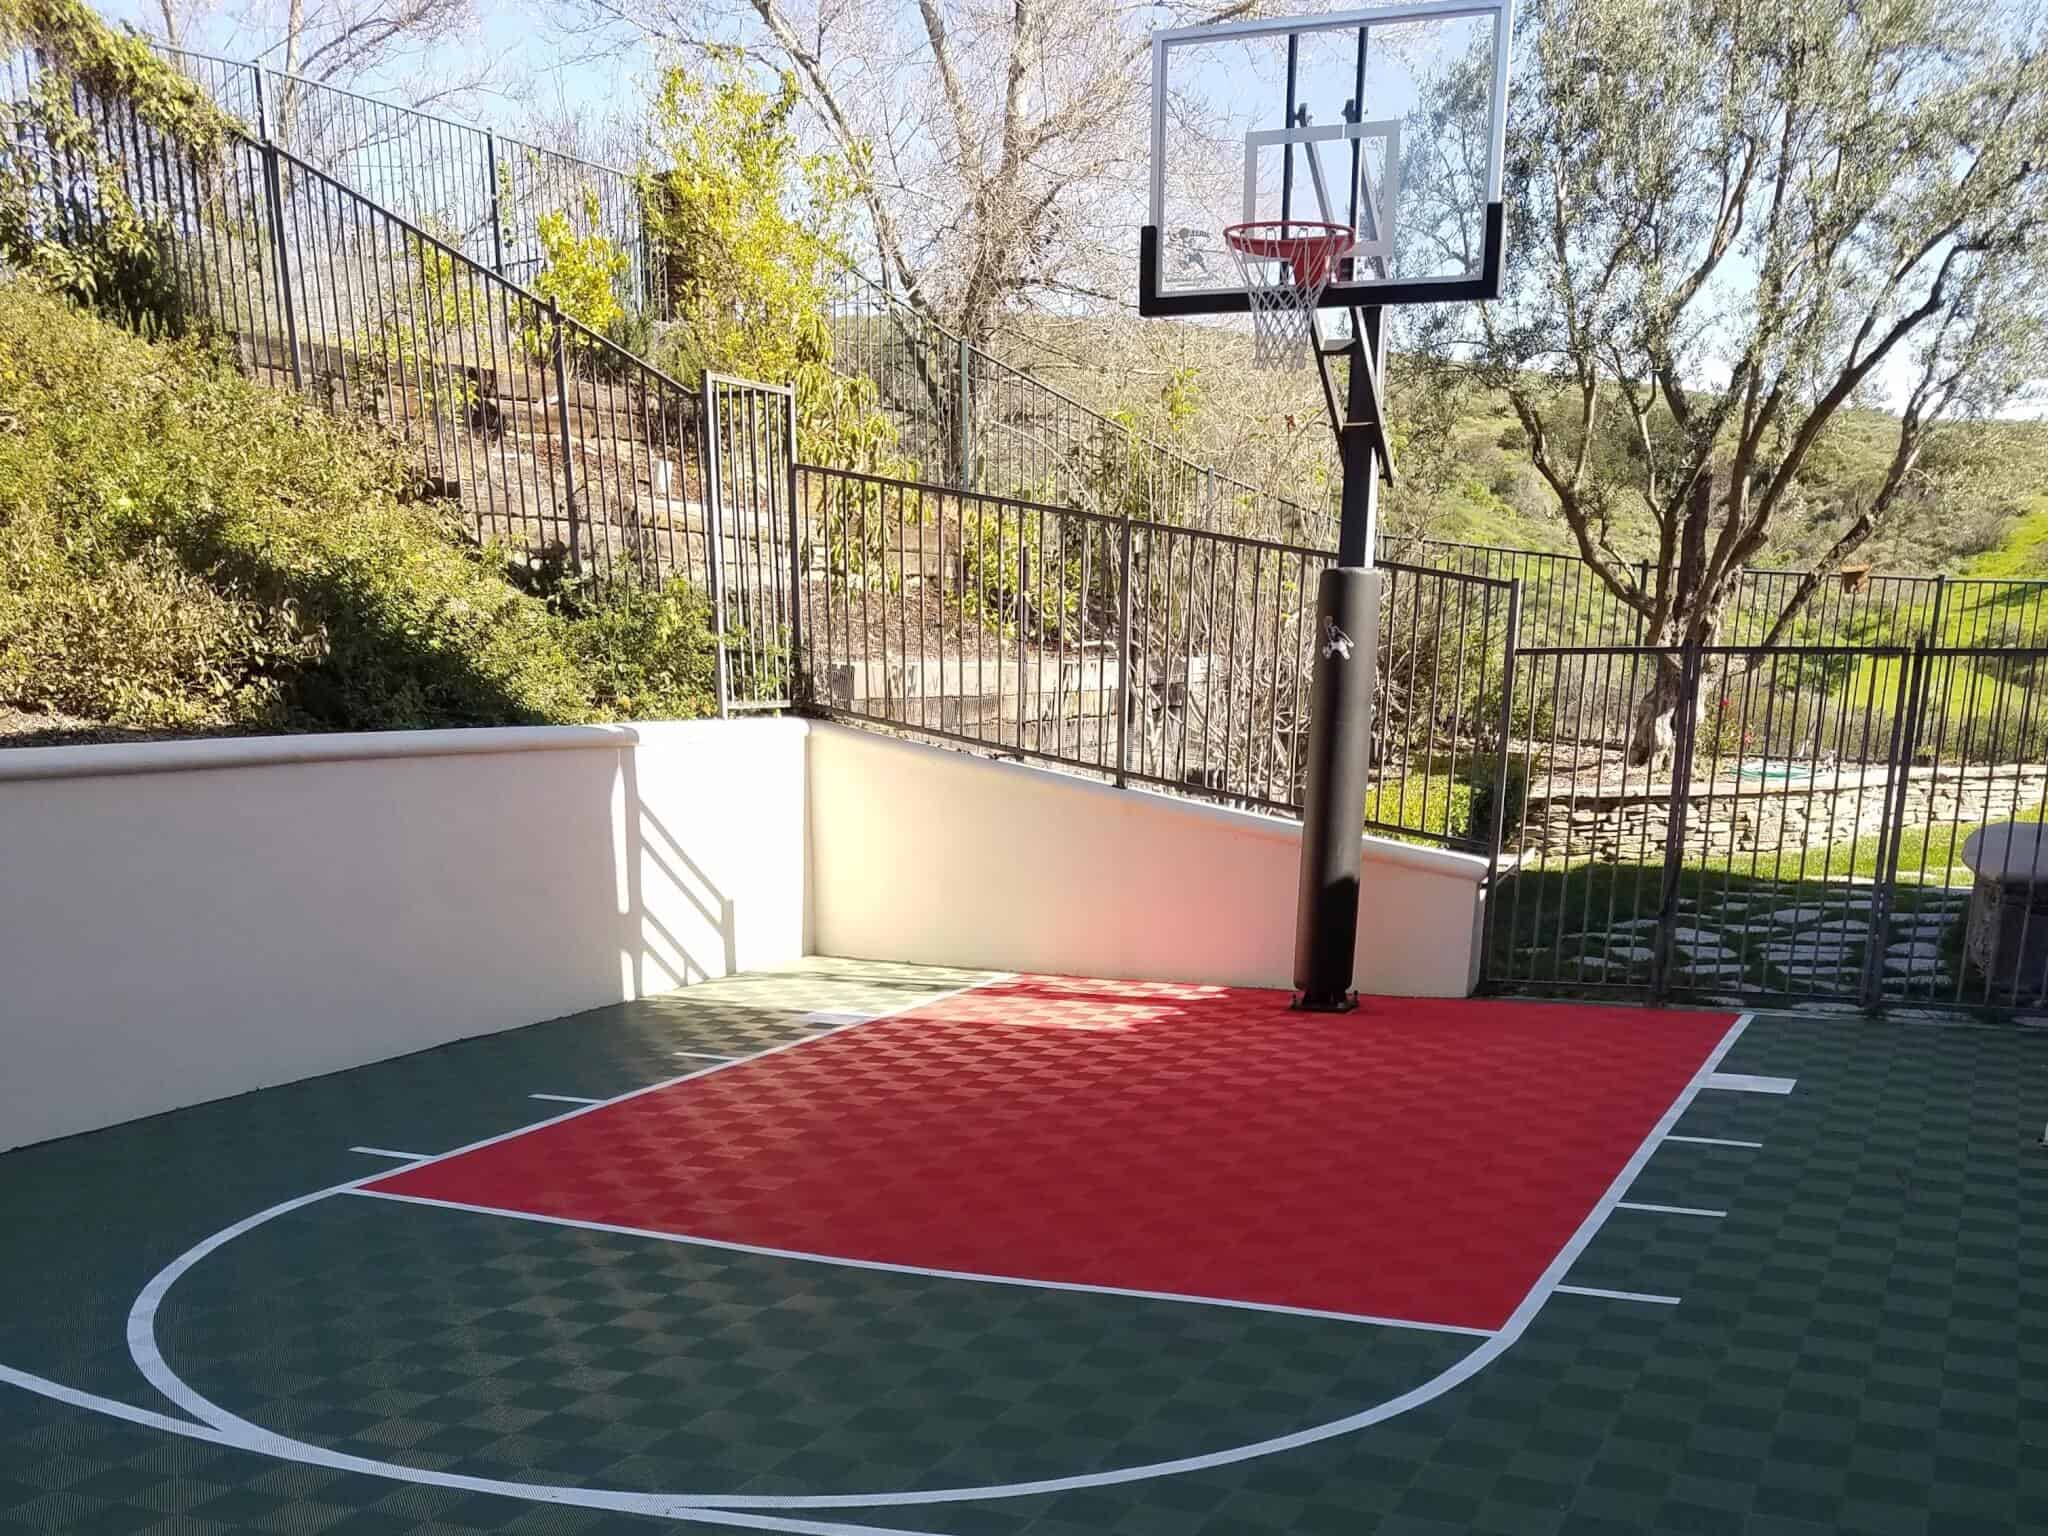 outdoor basketball court flooring customer reviews - coto de caza, CA